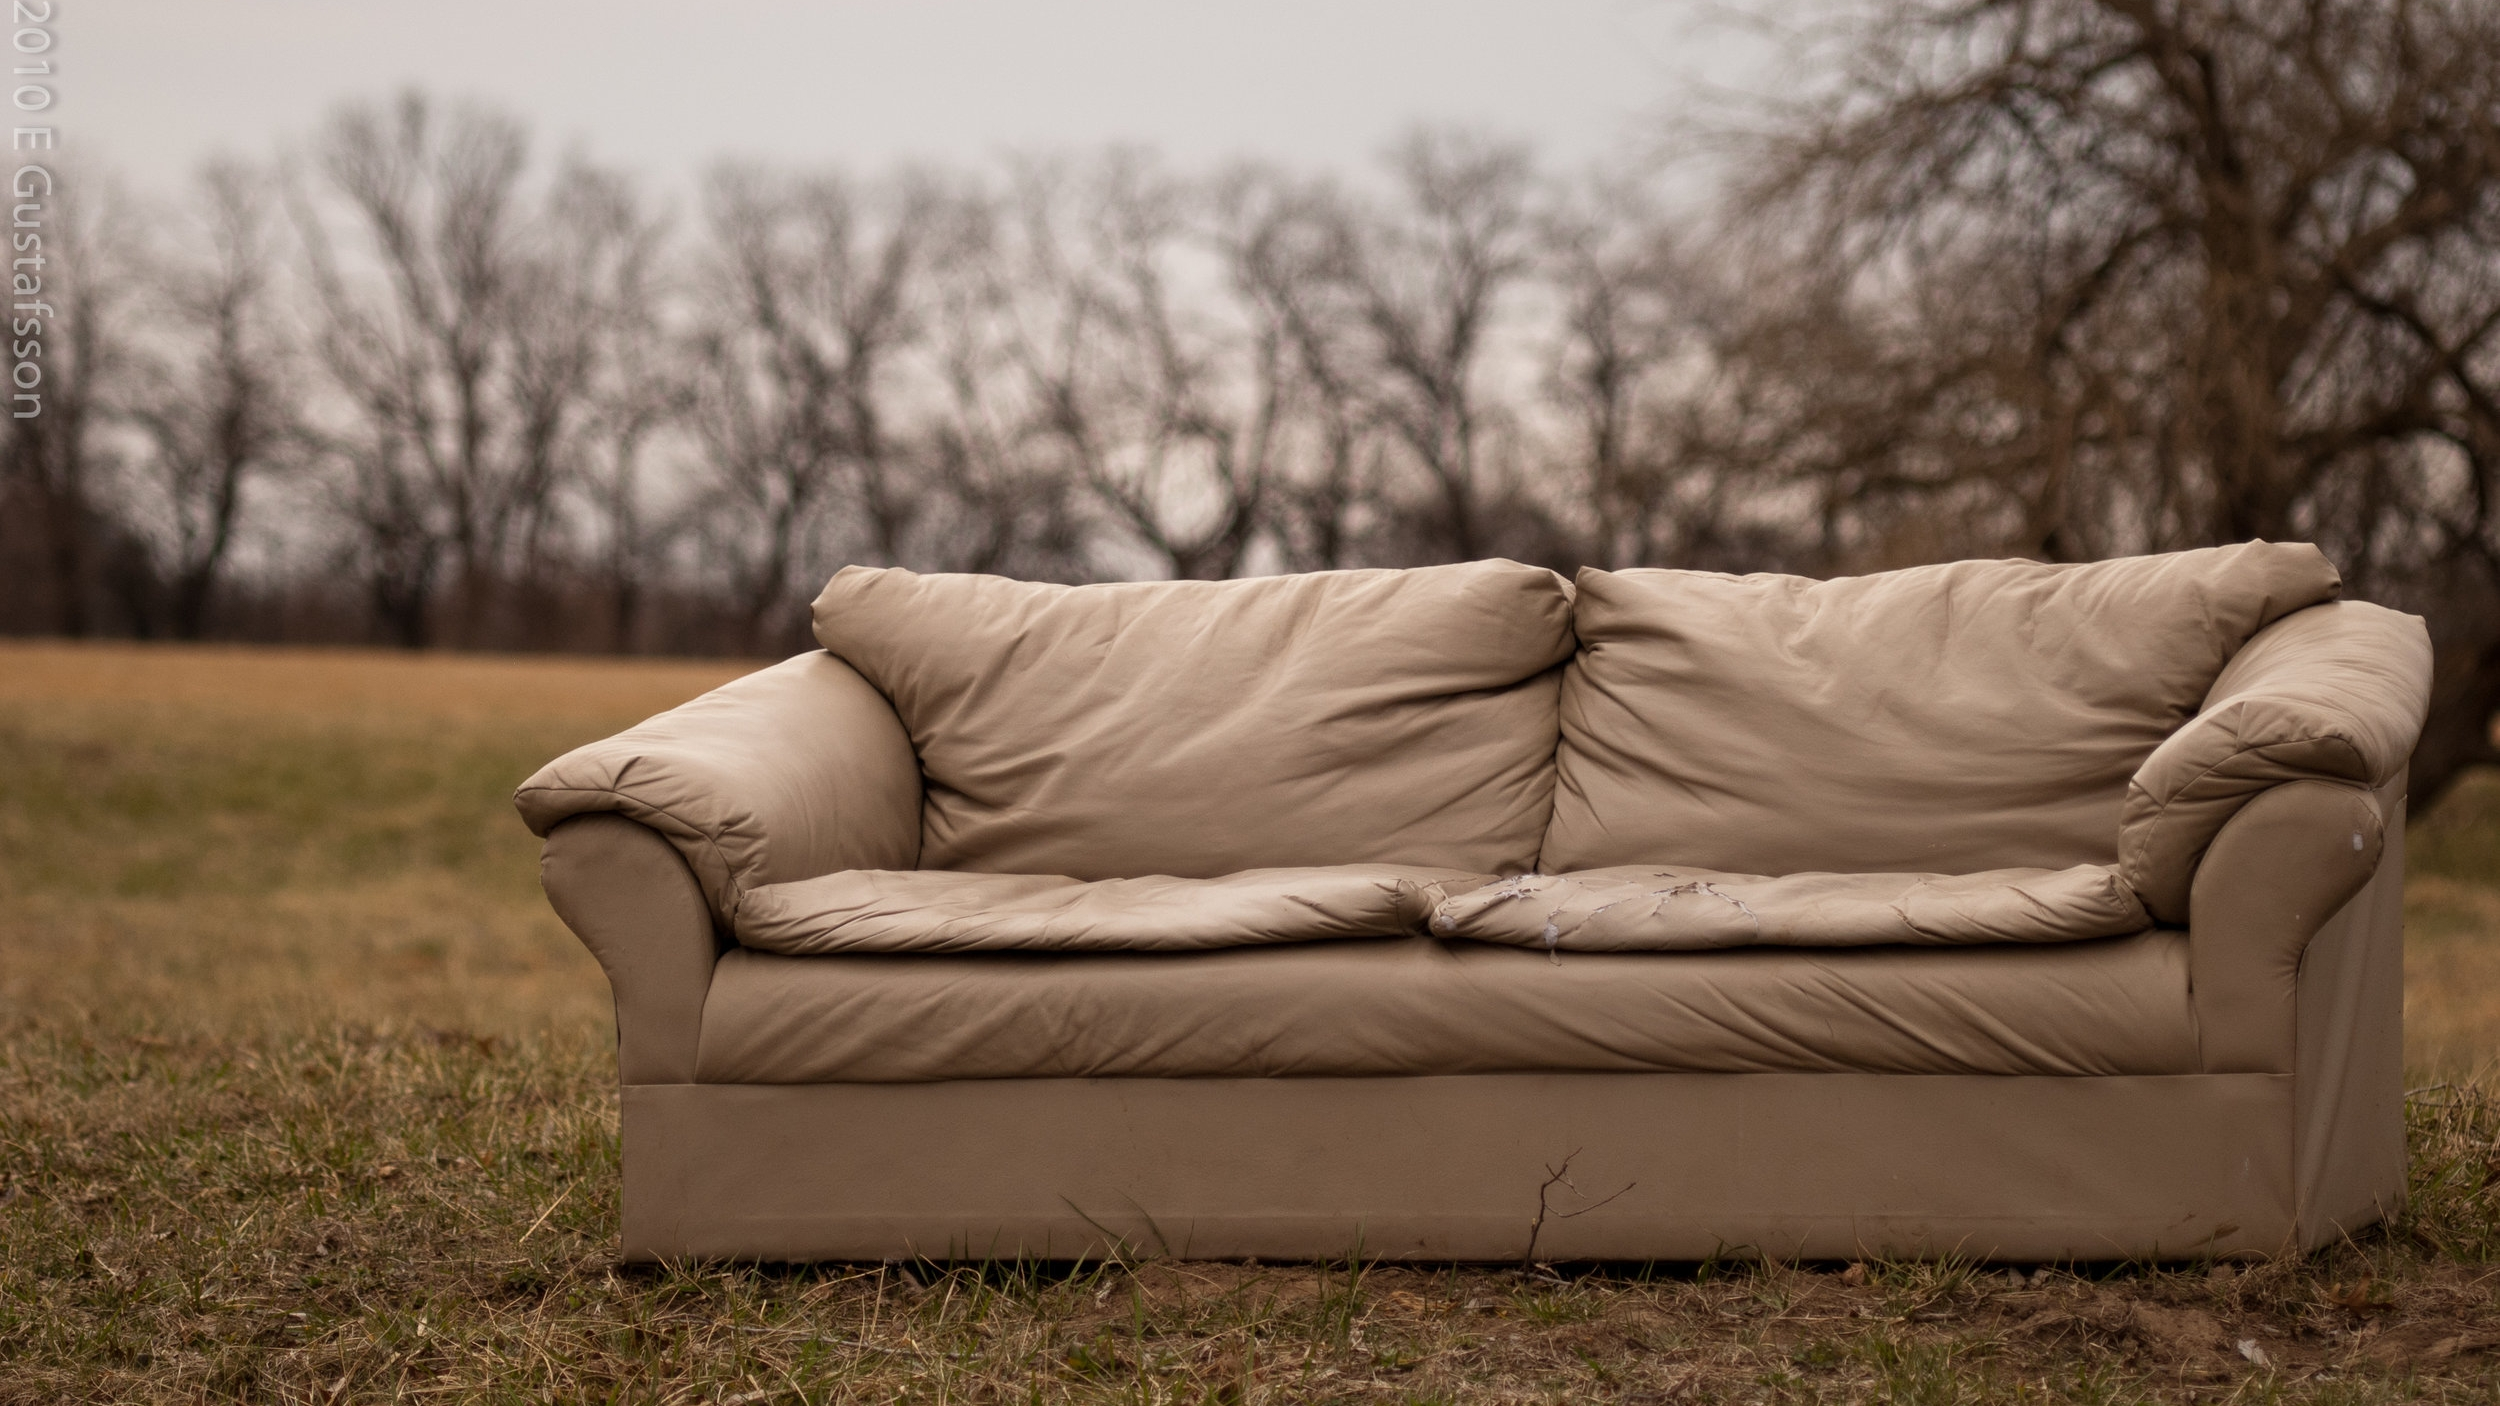 Couch in the Field by Eje Gustafsson CC.jpg